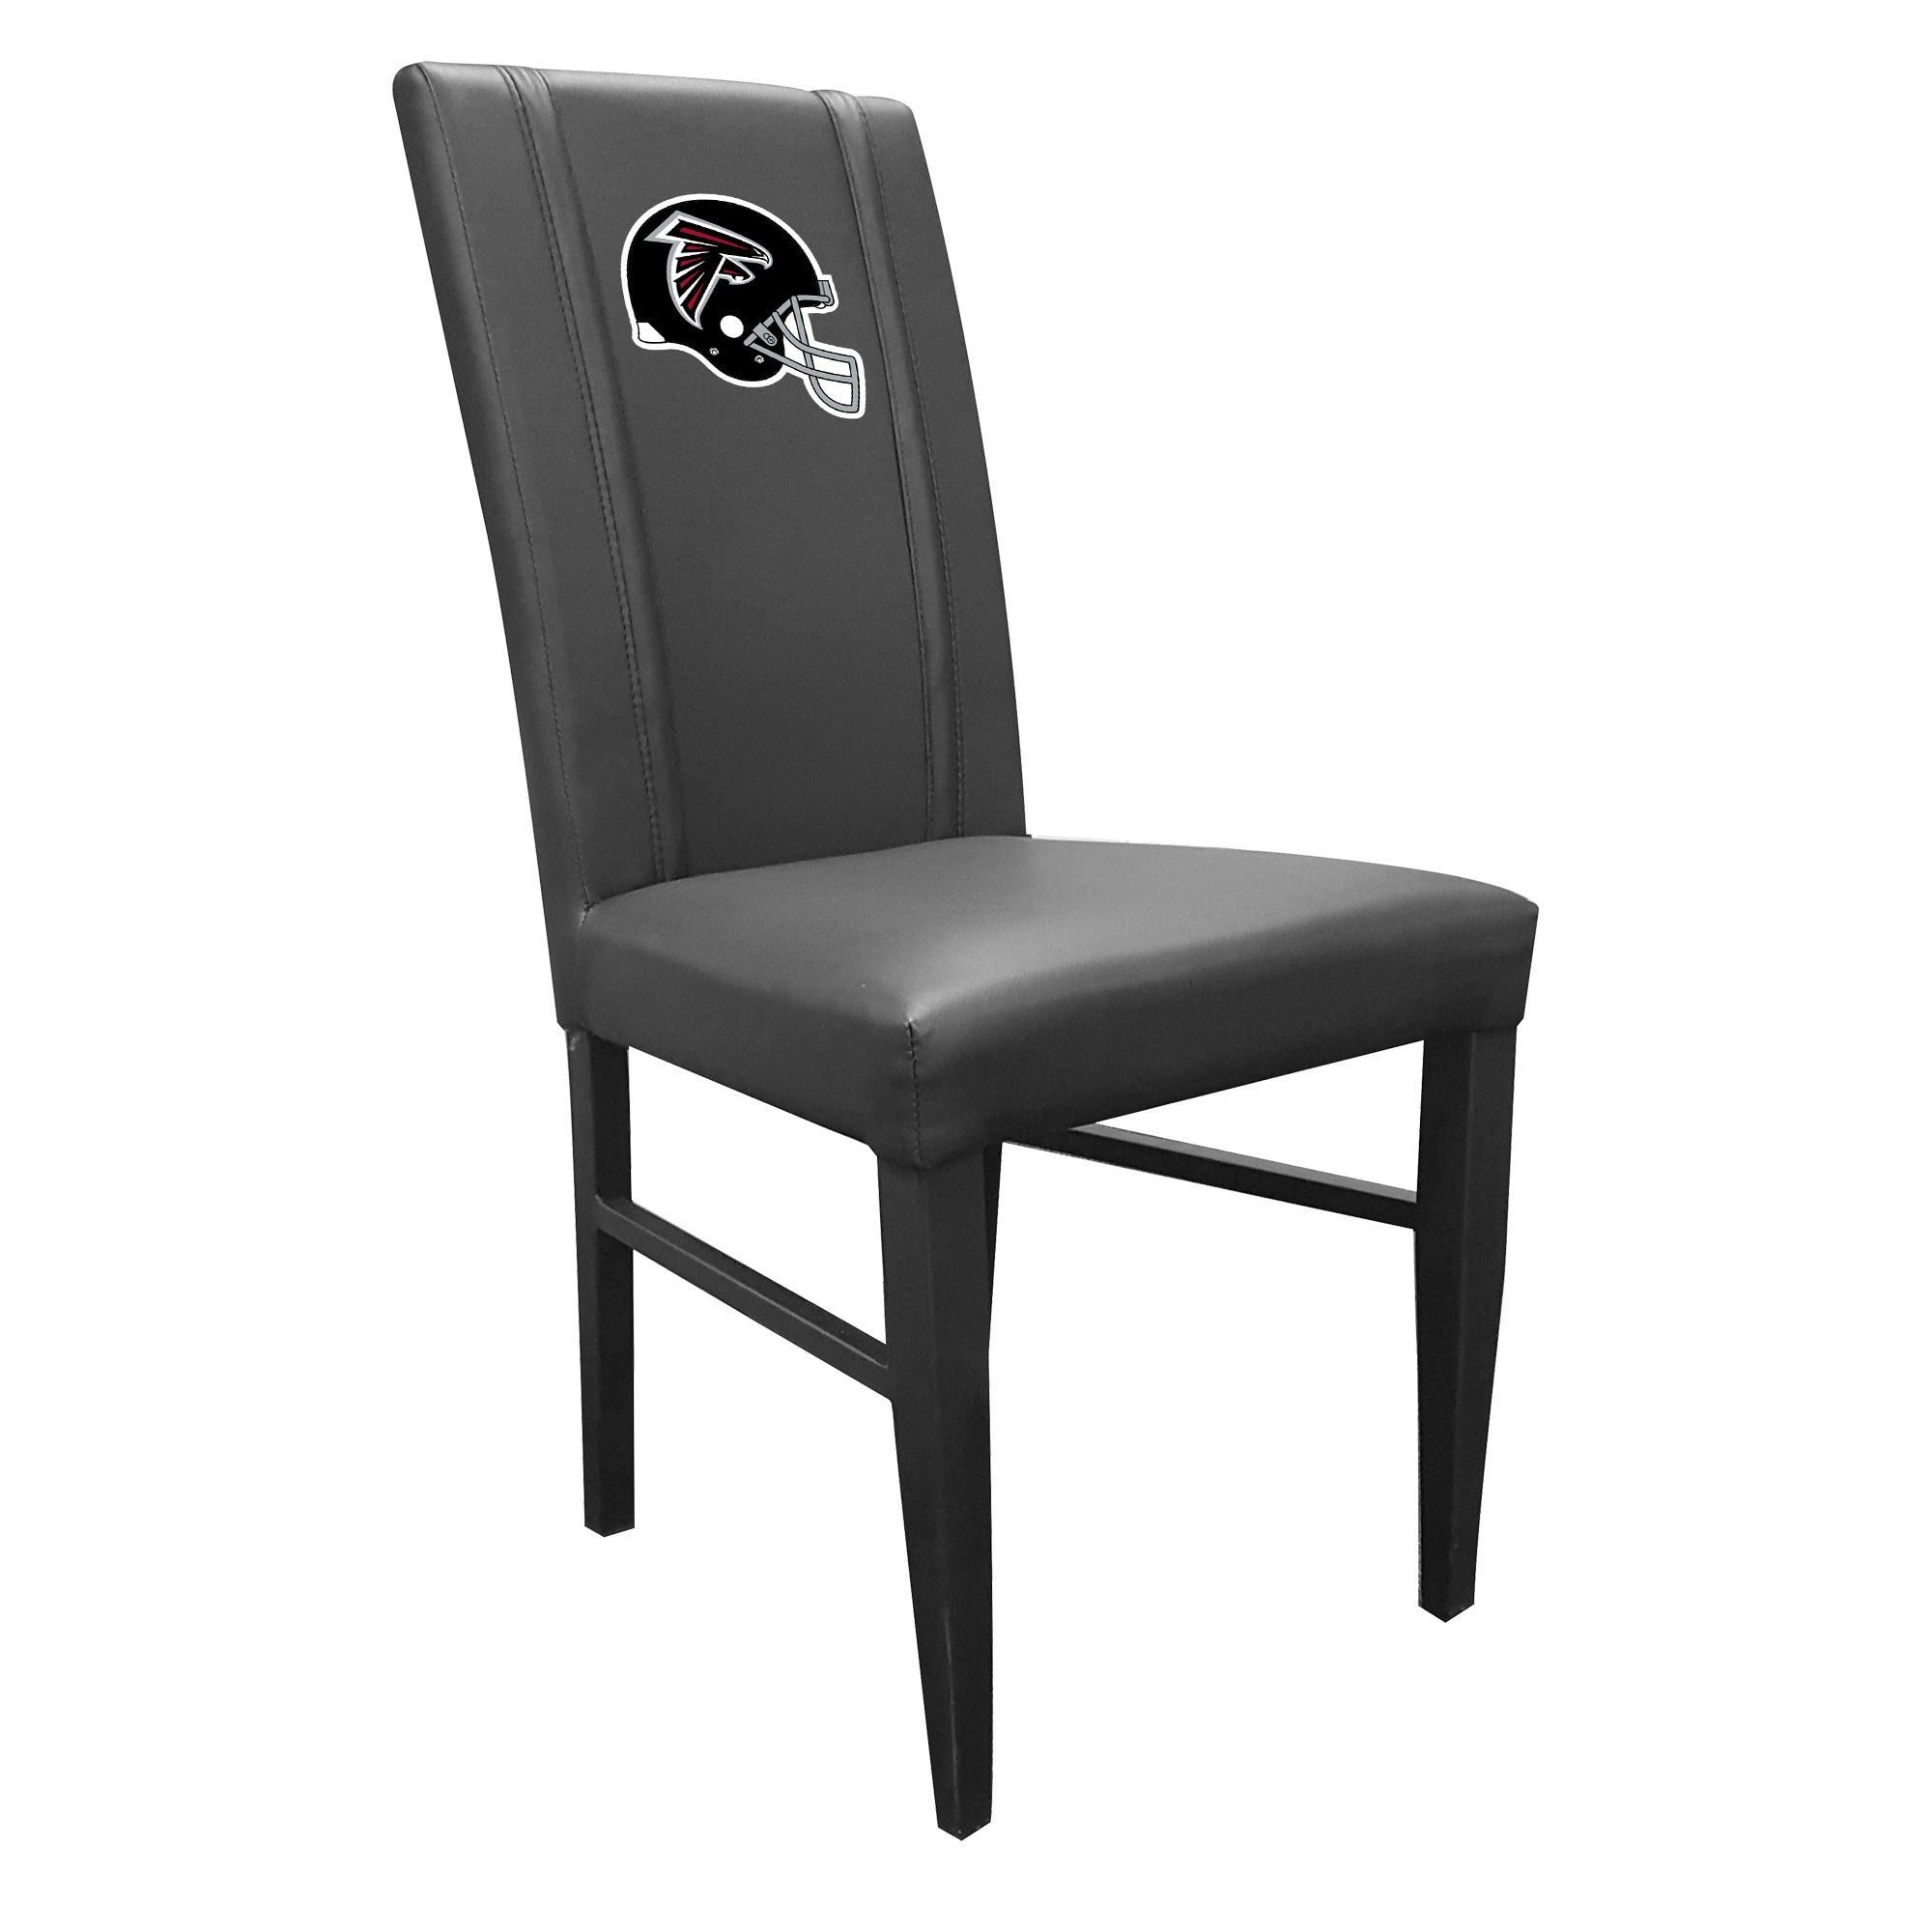 Side Chair 2000 with Atlanta Falcons Helmet Logo Set of 2